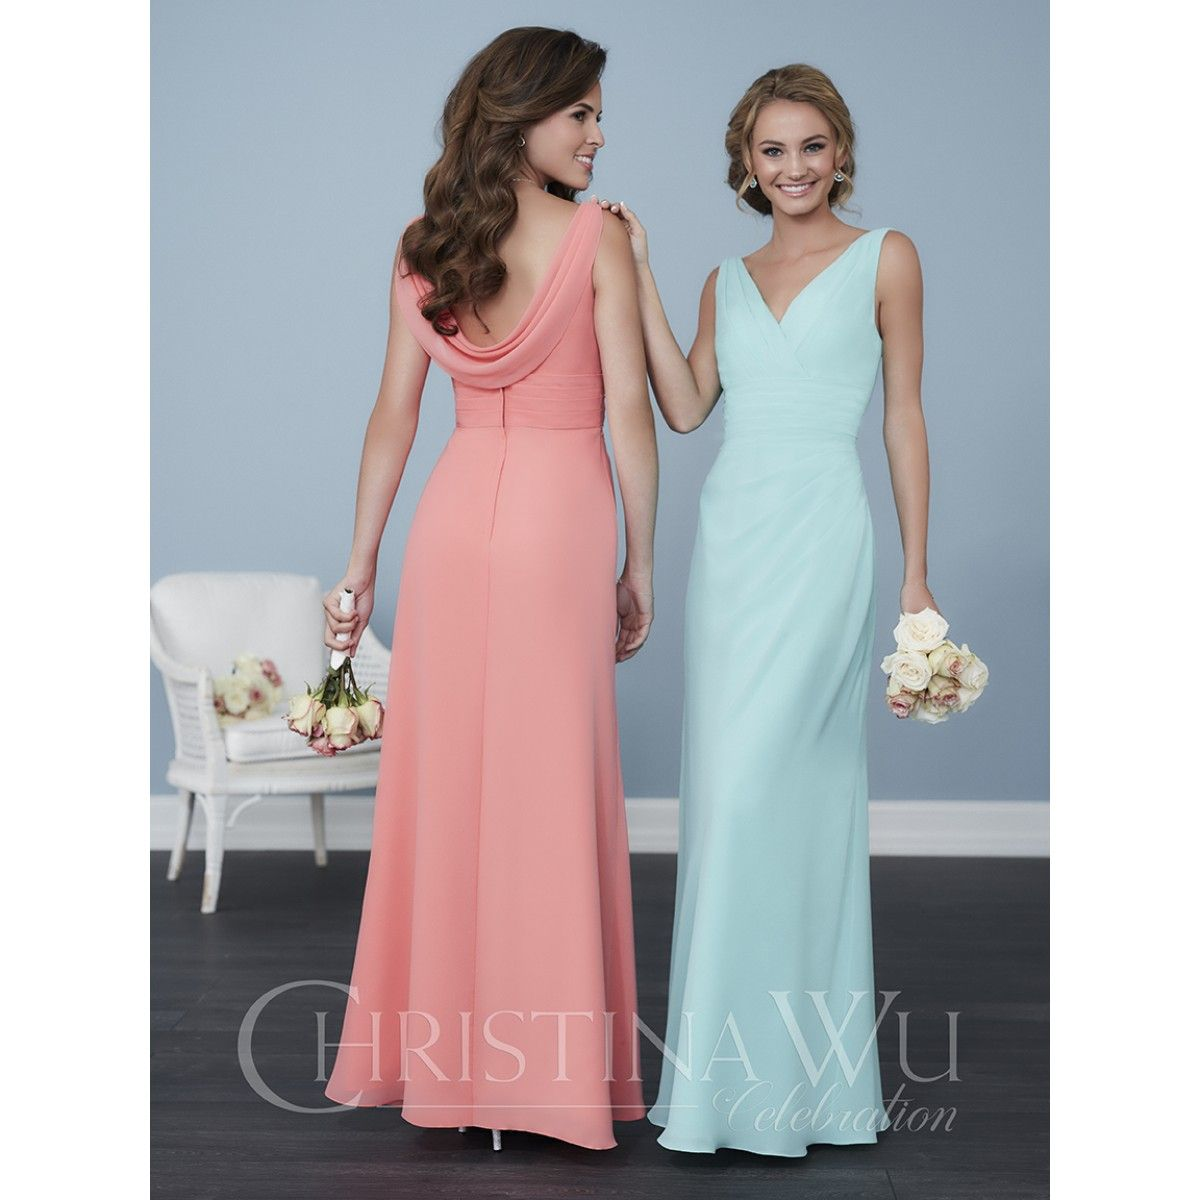 Bridesmaid Dress Available at Ella Park Bridal | Newburgh, IN ...